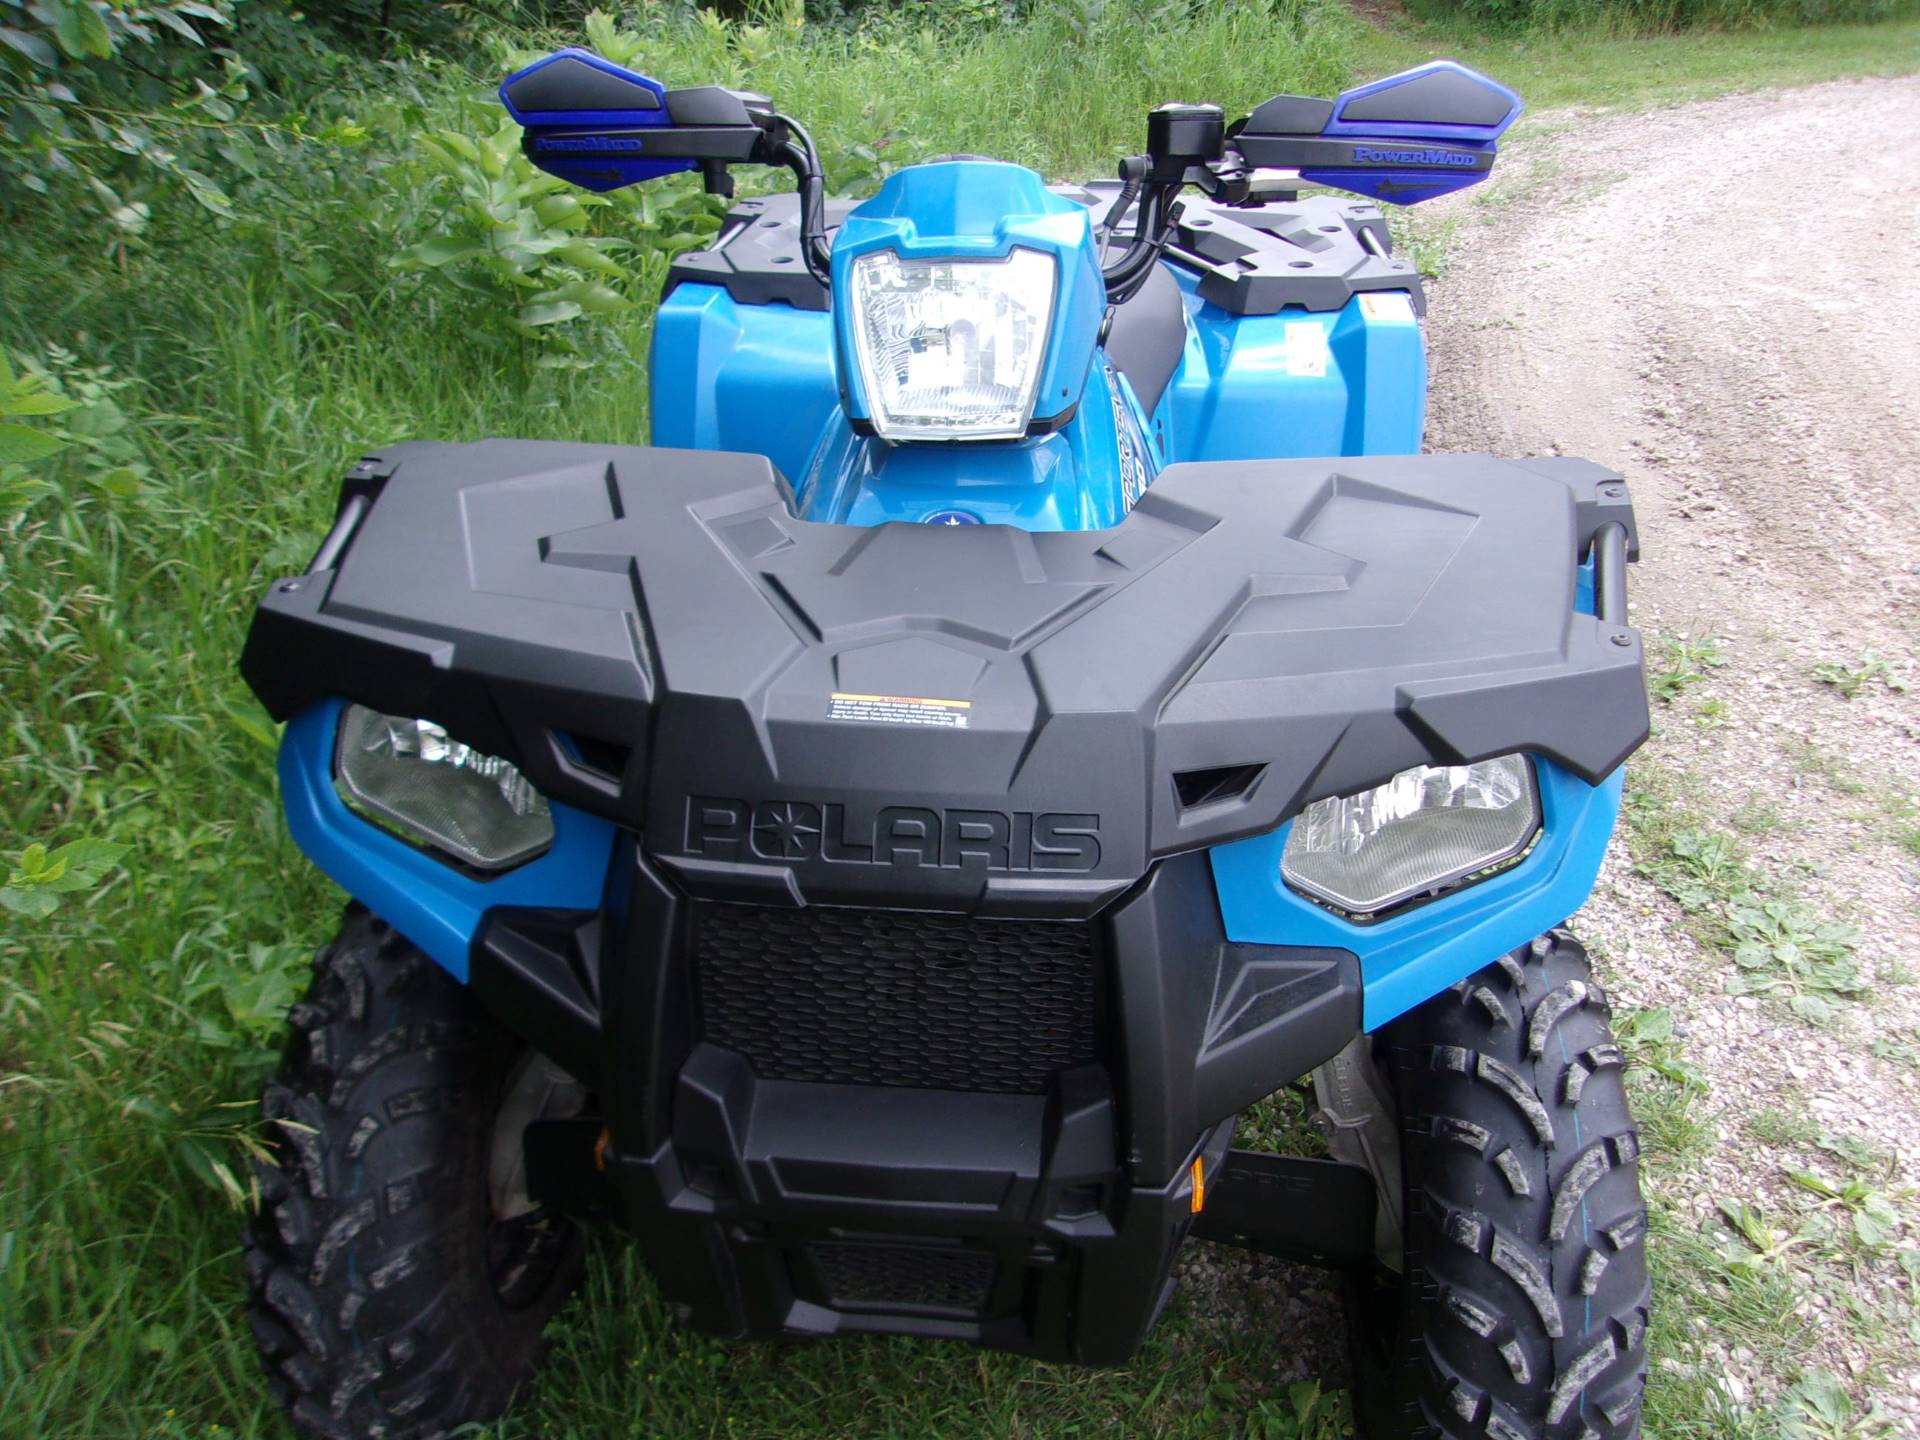 2016 Polaris Sportsman 450 H.O. in Mukwonago, Wisconsin - Photo 7